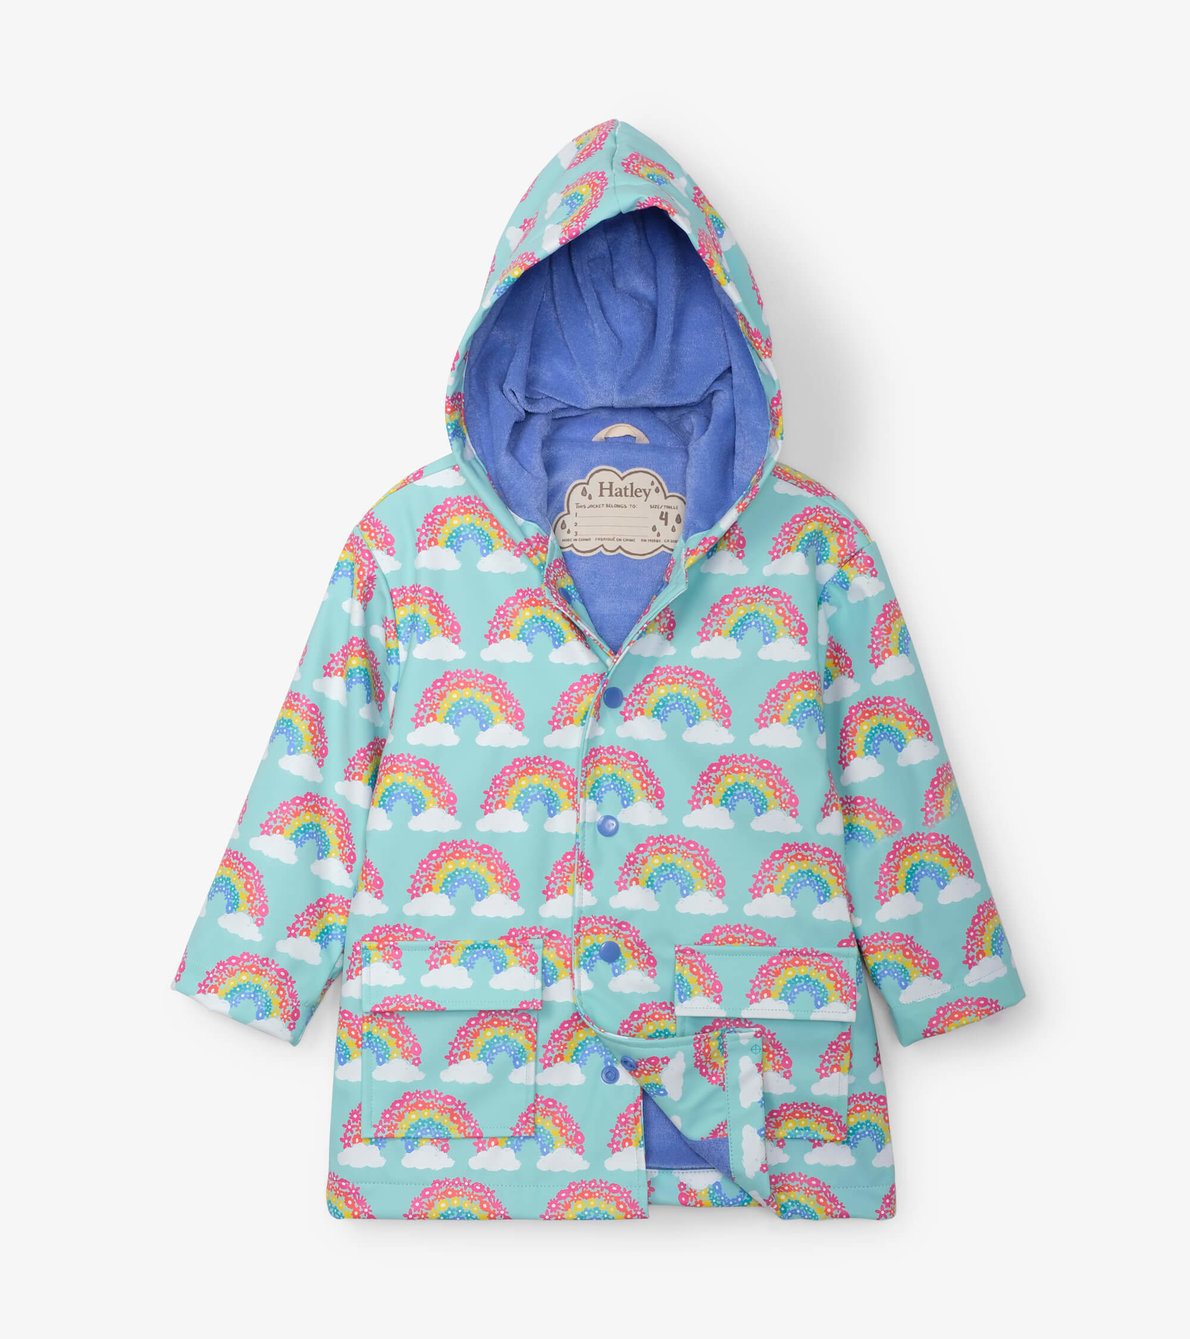 View larger image of Magical Rainbows Raincoat